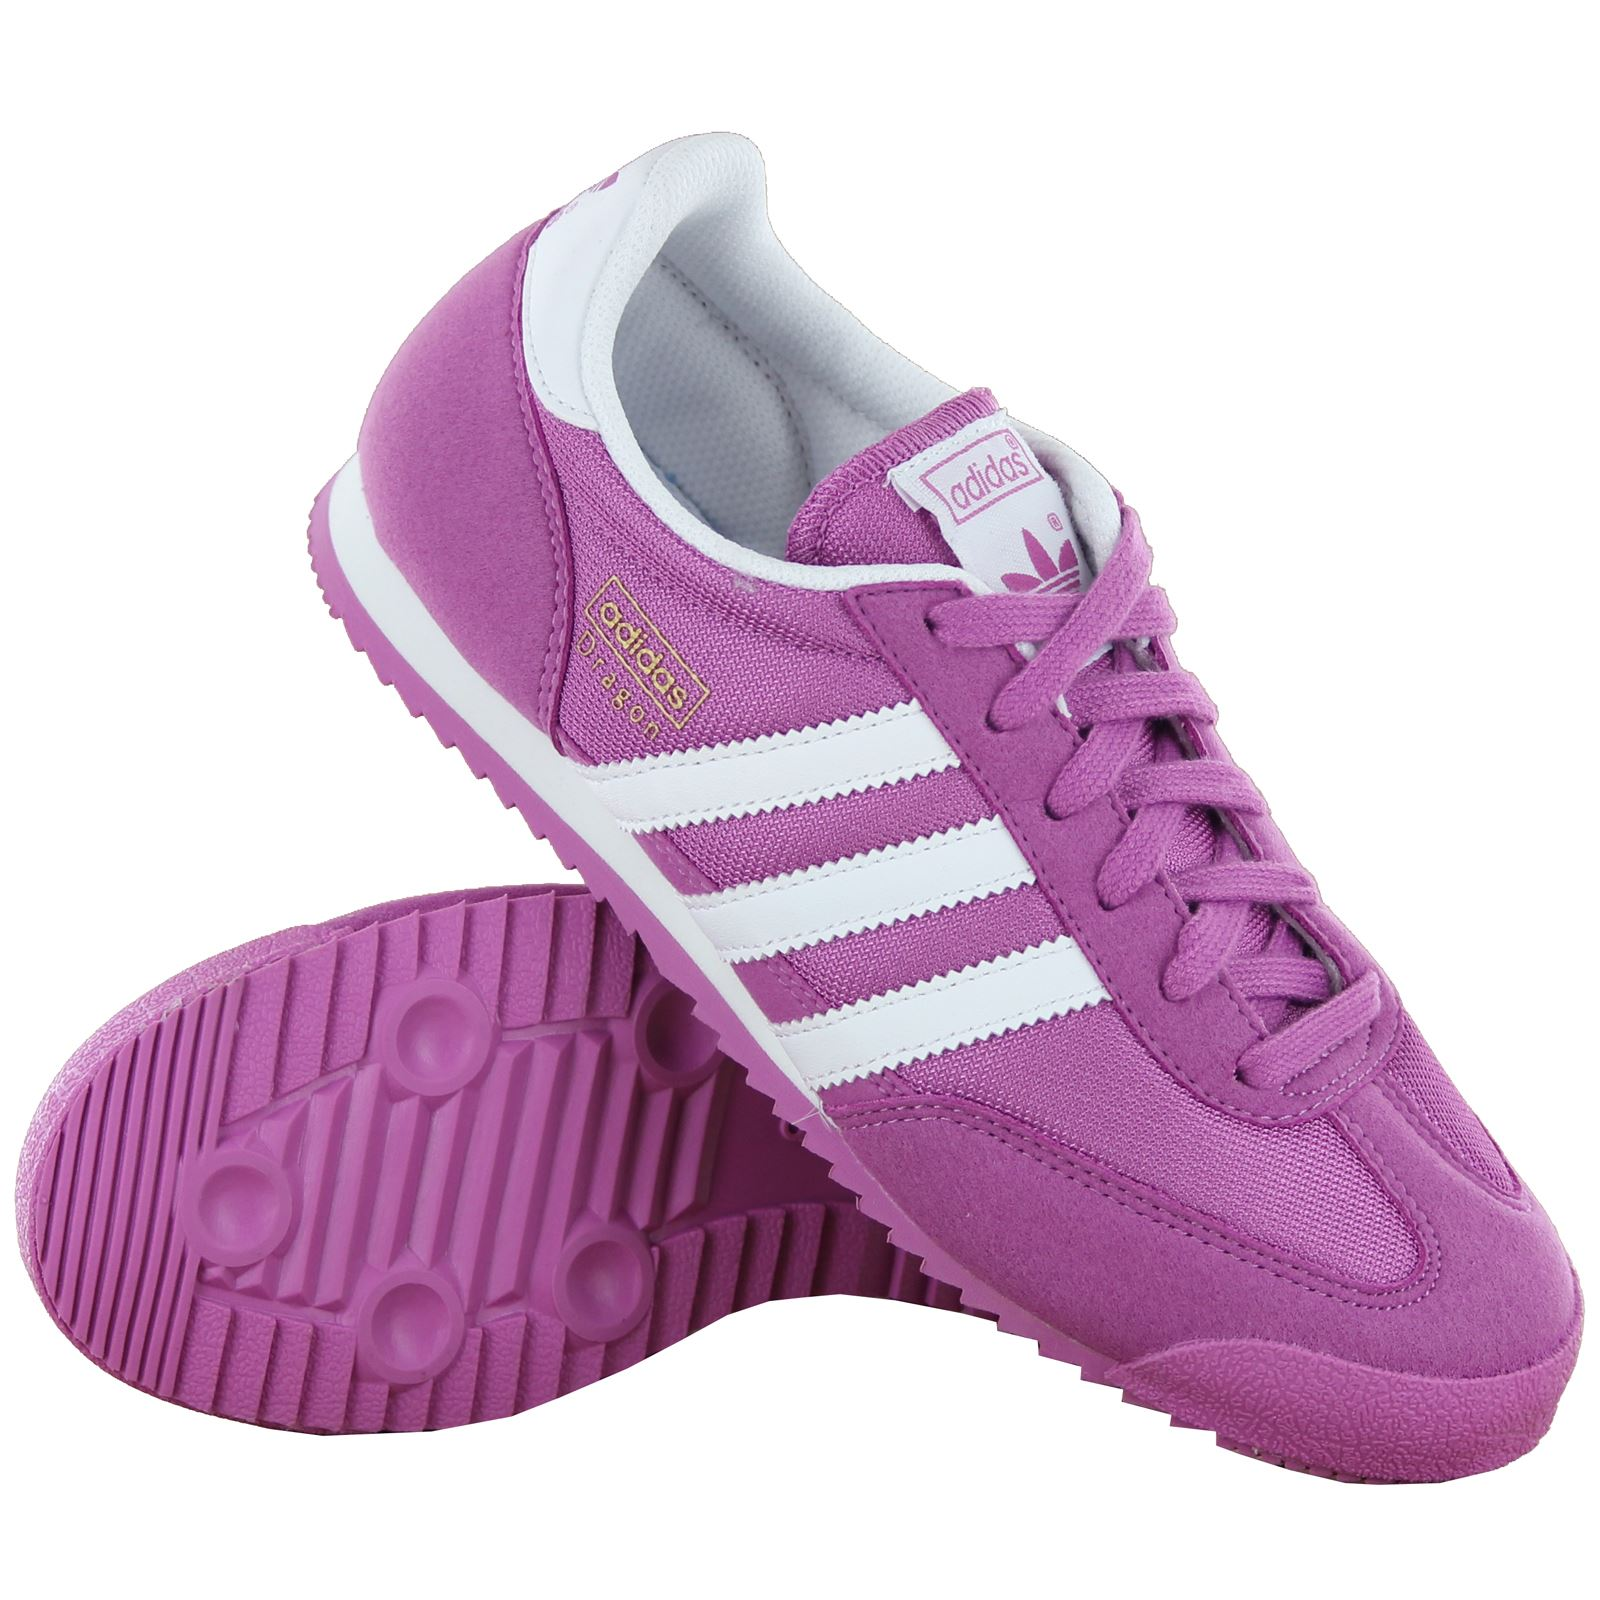 adidas ladies dragon trainers